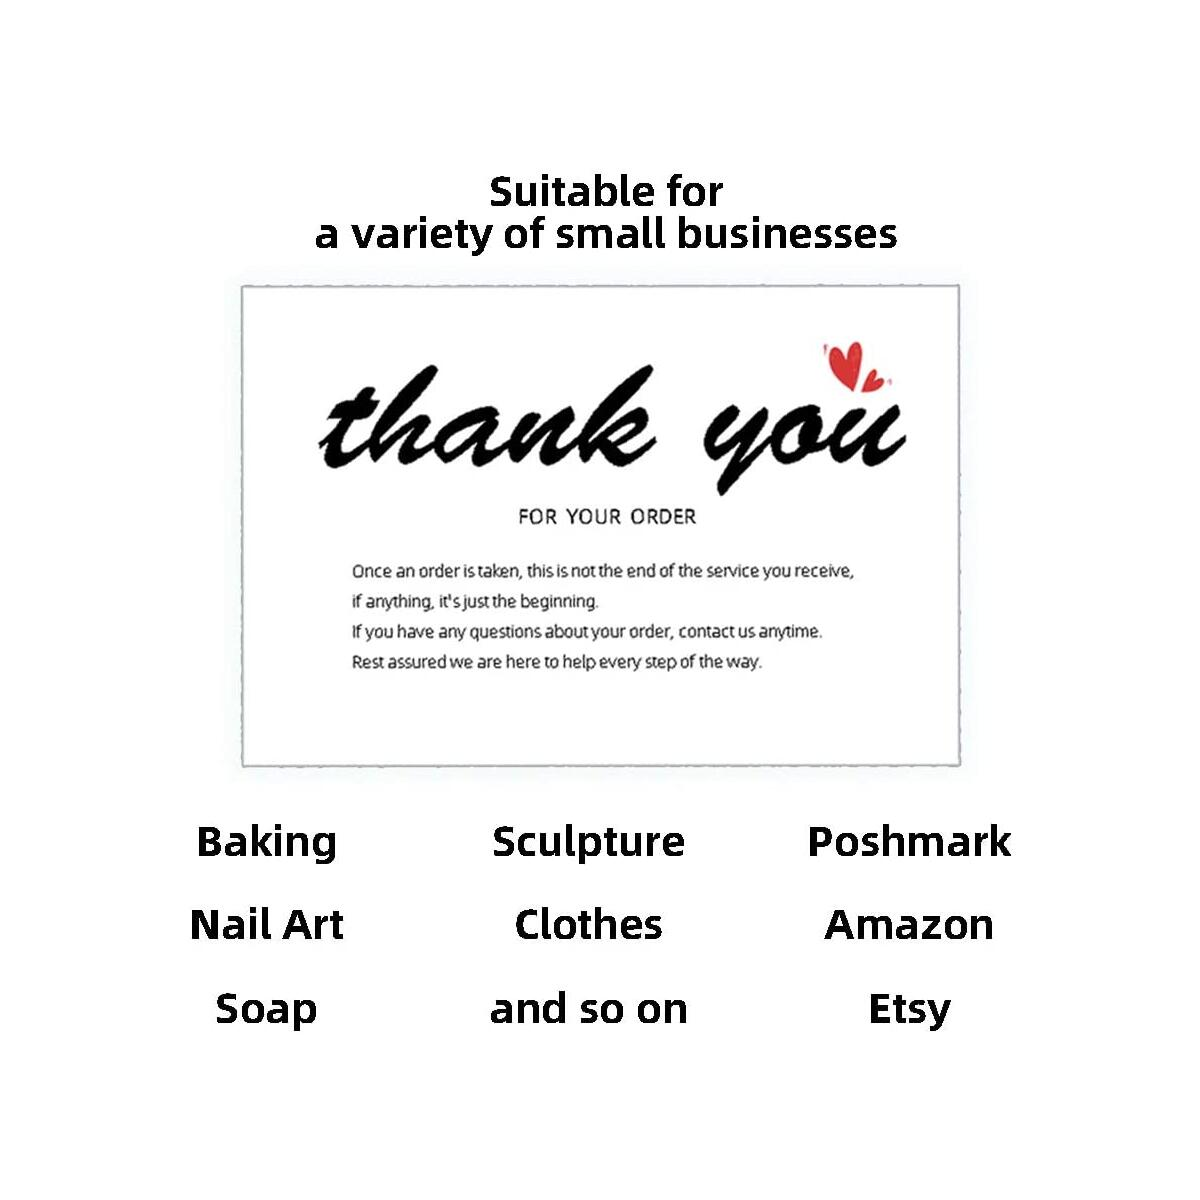 50 pcs Large Thank You Cards for Small Business Orders Fit for Online Sales